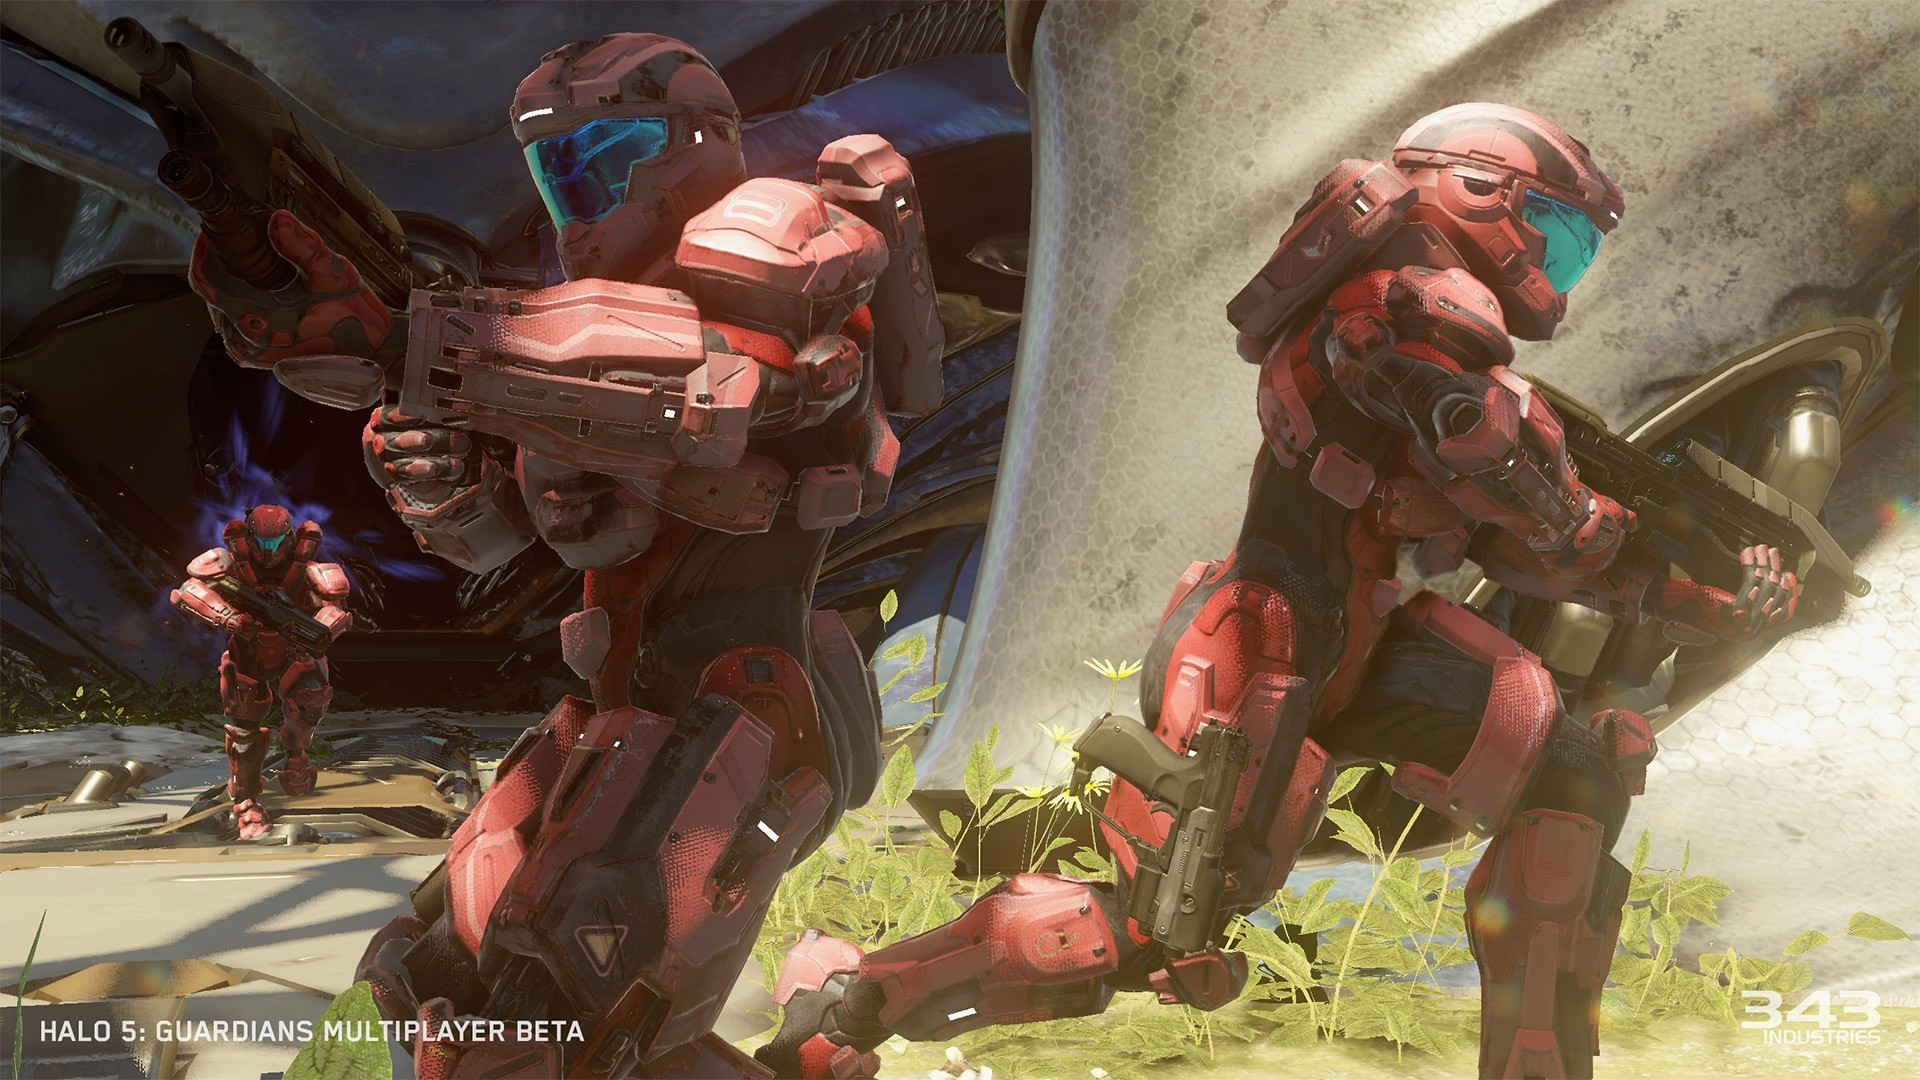 Halo 5: Guardians Will Have Expanded Forge, No Remastered